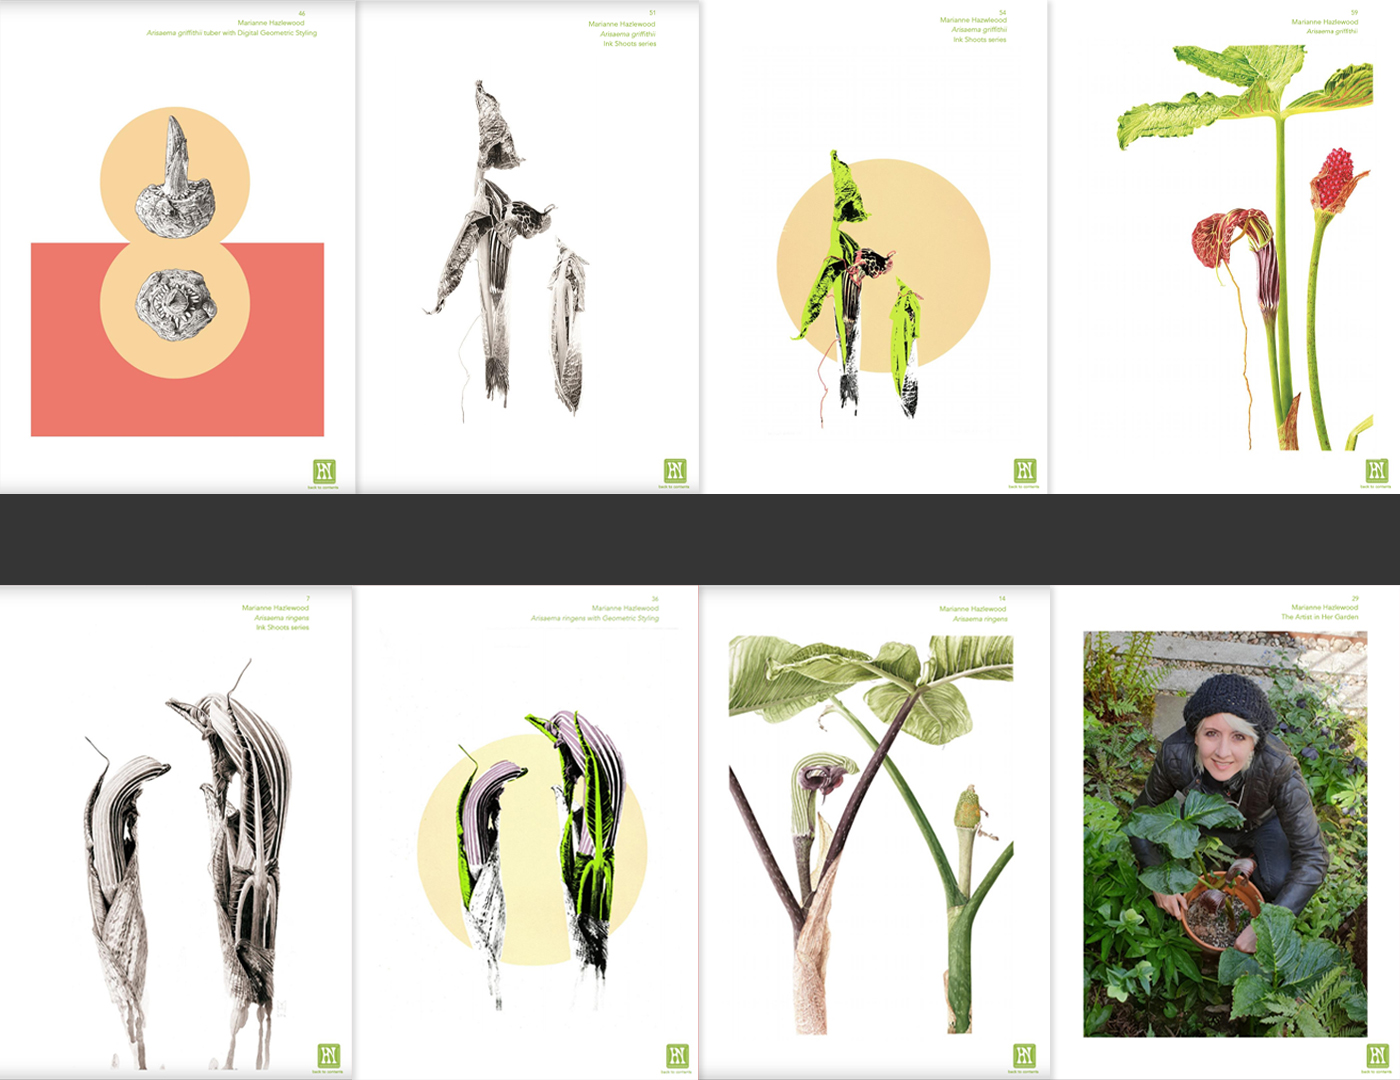 Herbology News - The Energy Issue - art inserts by Marianne Hazlewood